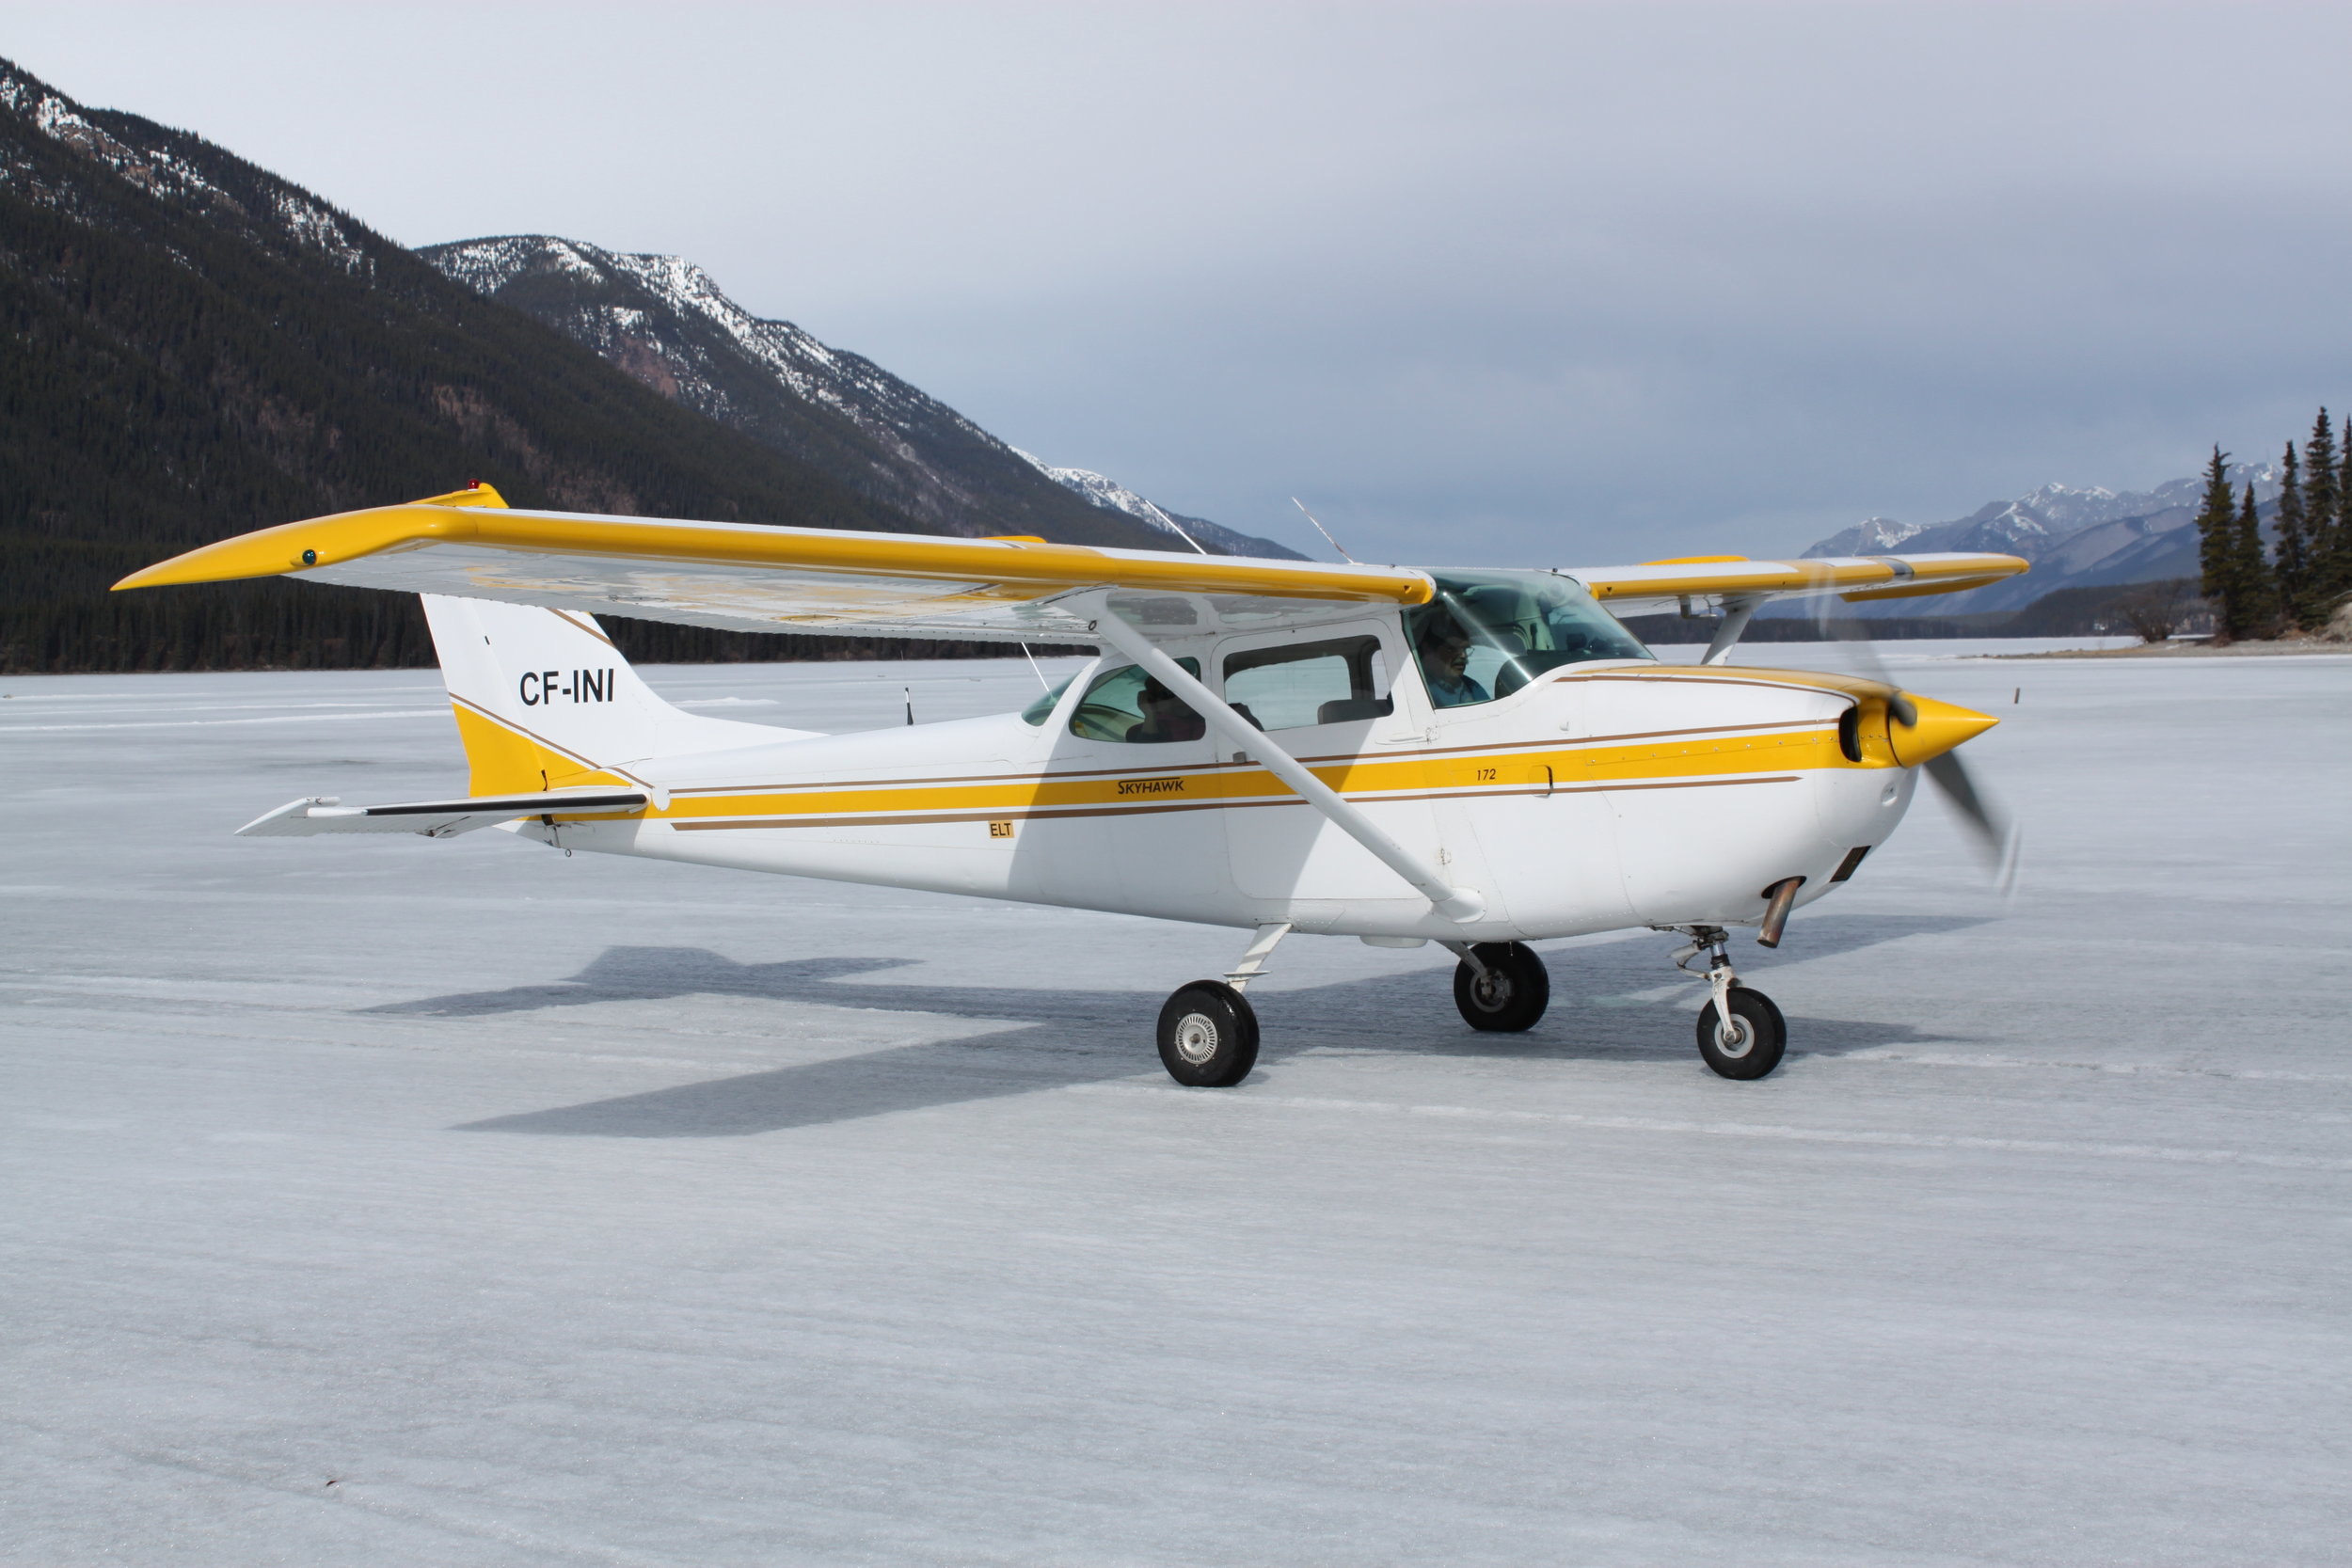 Cessna 172 returning from a winter sightseeing flight. Operating on our frozen Muncho lake icestrip in front of the Northern Rockies Lodge